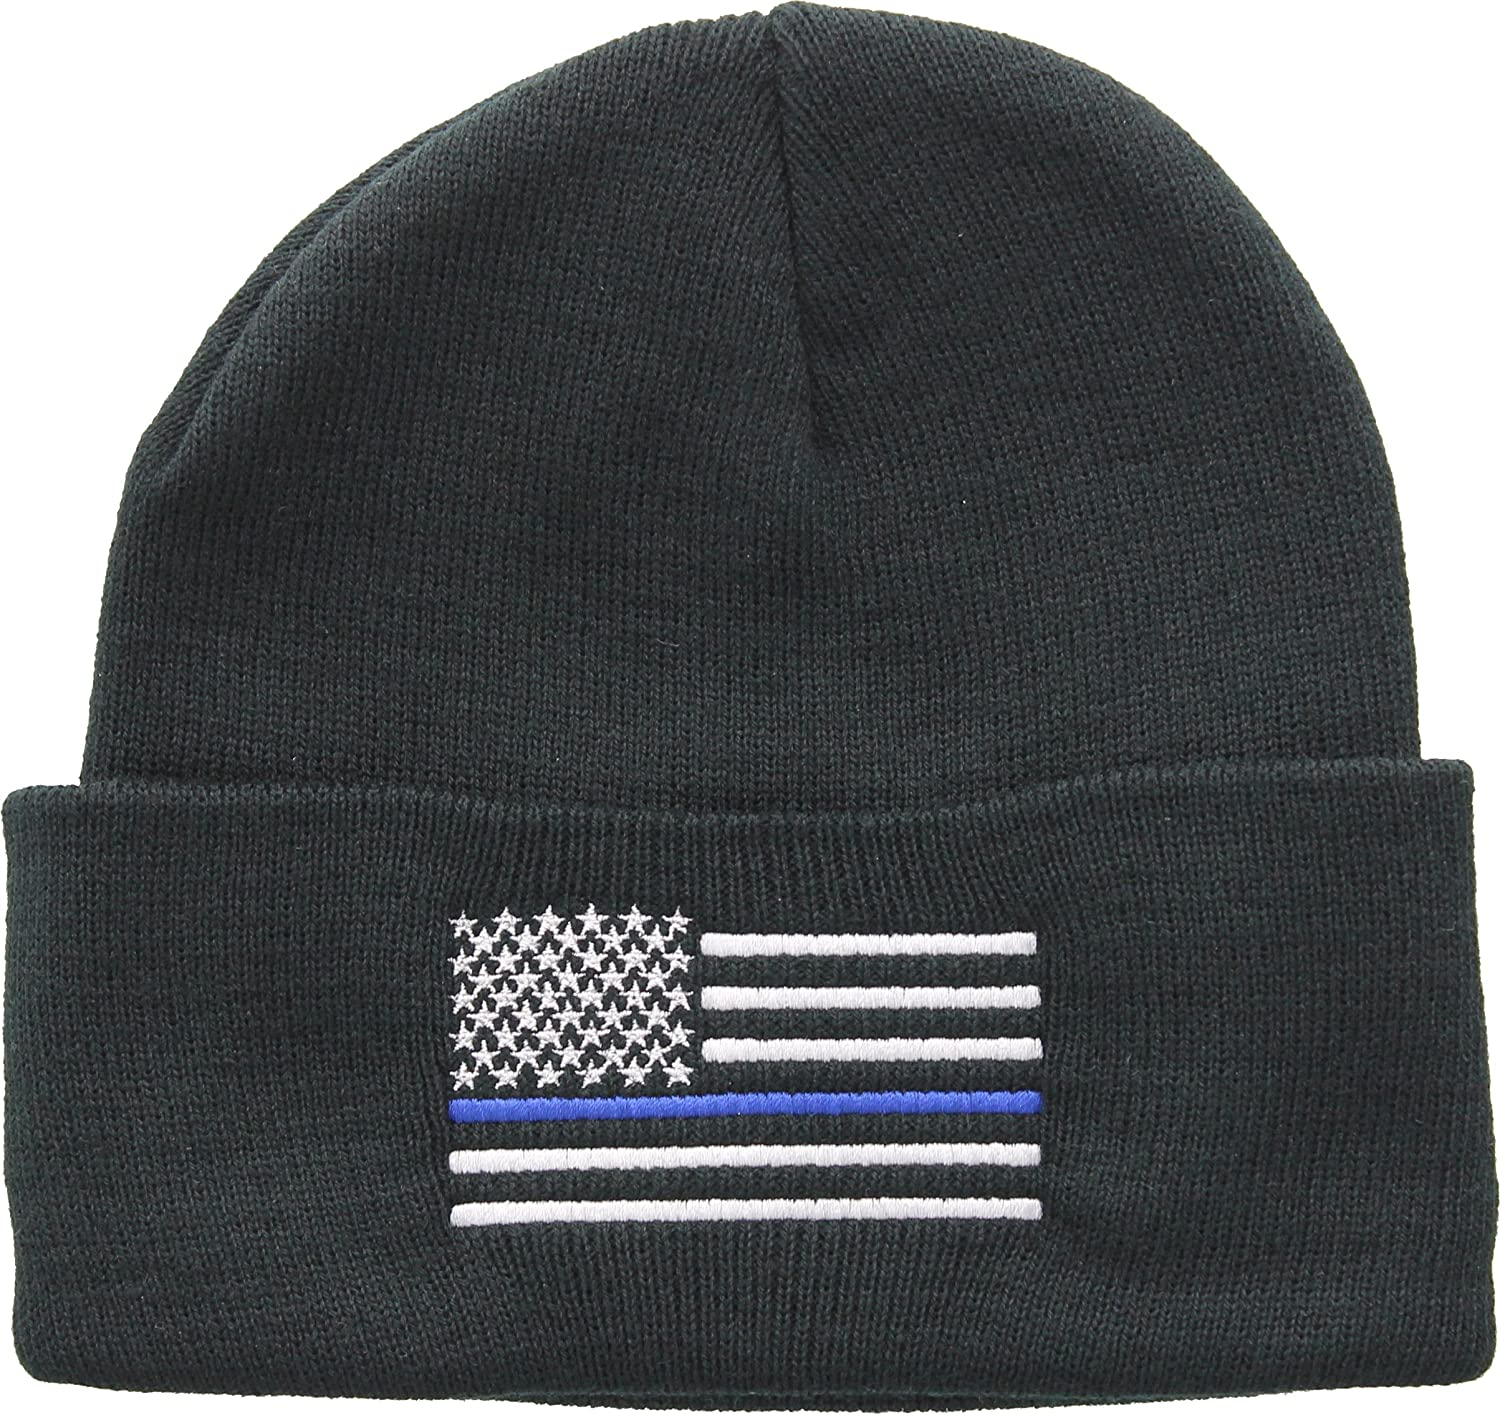 Amazon.com  Army Universe Thin Blue Line USA American Flag Support The  Police Acrylic Winter Watch Cap - Black  Clothing 3c8b715b268